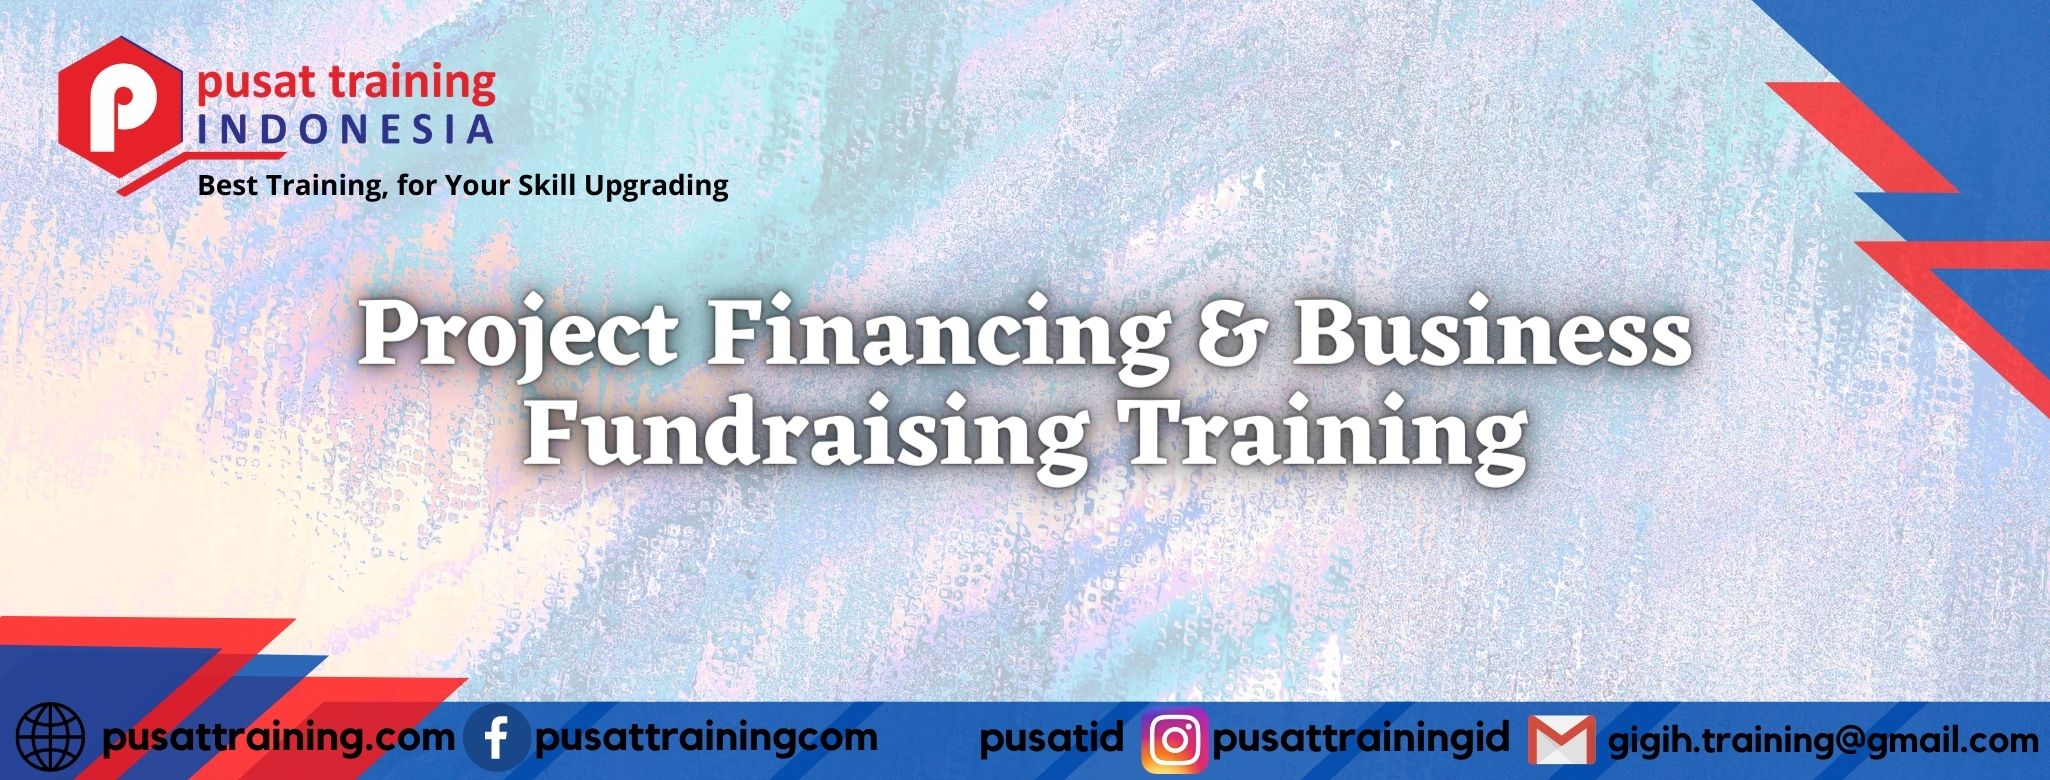 Project-Financing-Business-Fundraising-Training